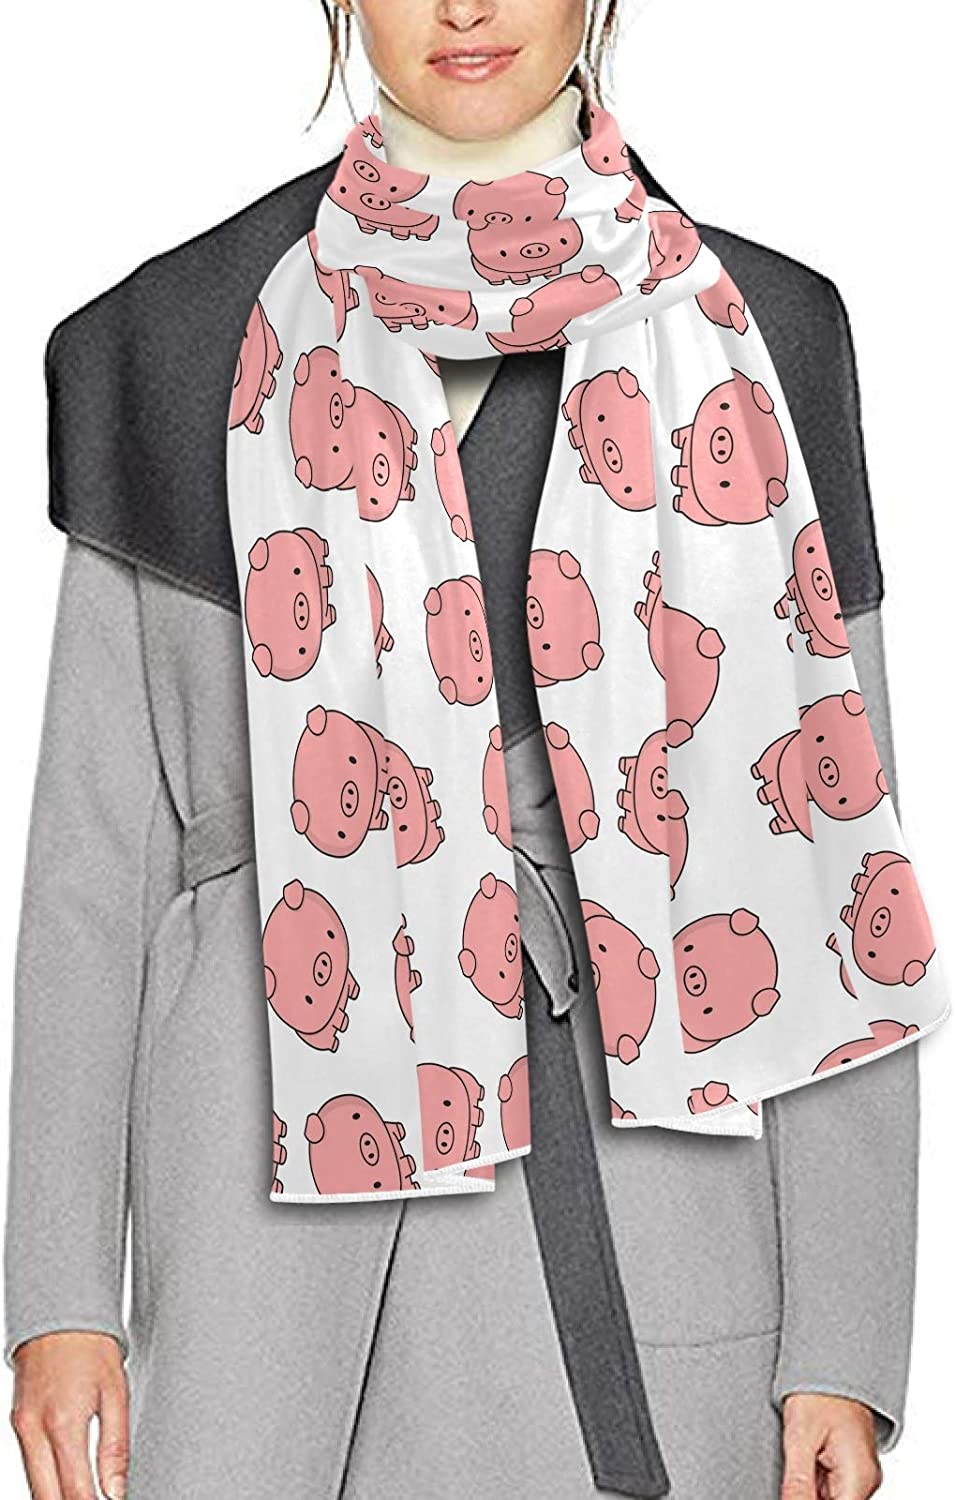 Scarf for Women and Men Cute Animals Pig Blanket Shawl Scarf wraps Soft warm Winter Oversized Scarves Lightweight